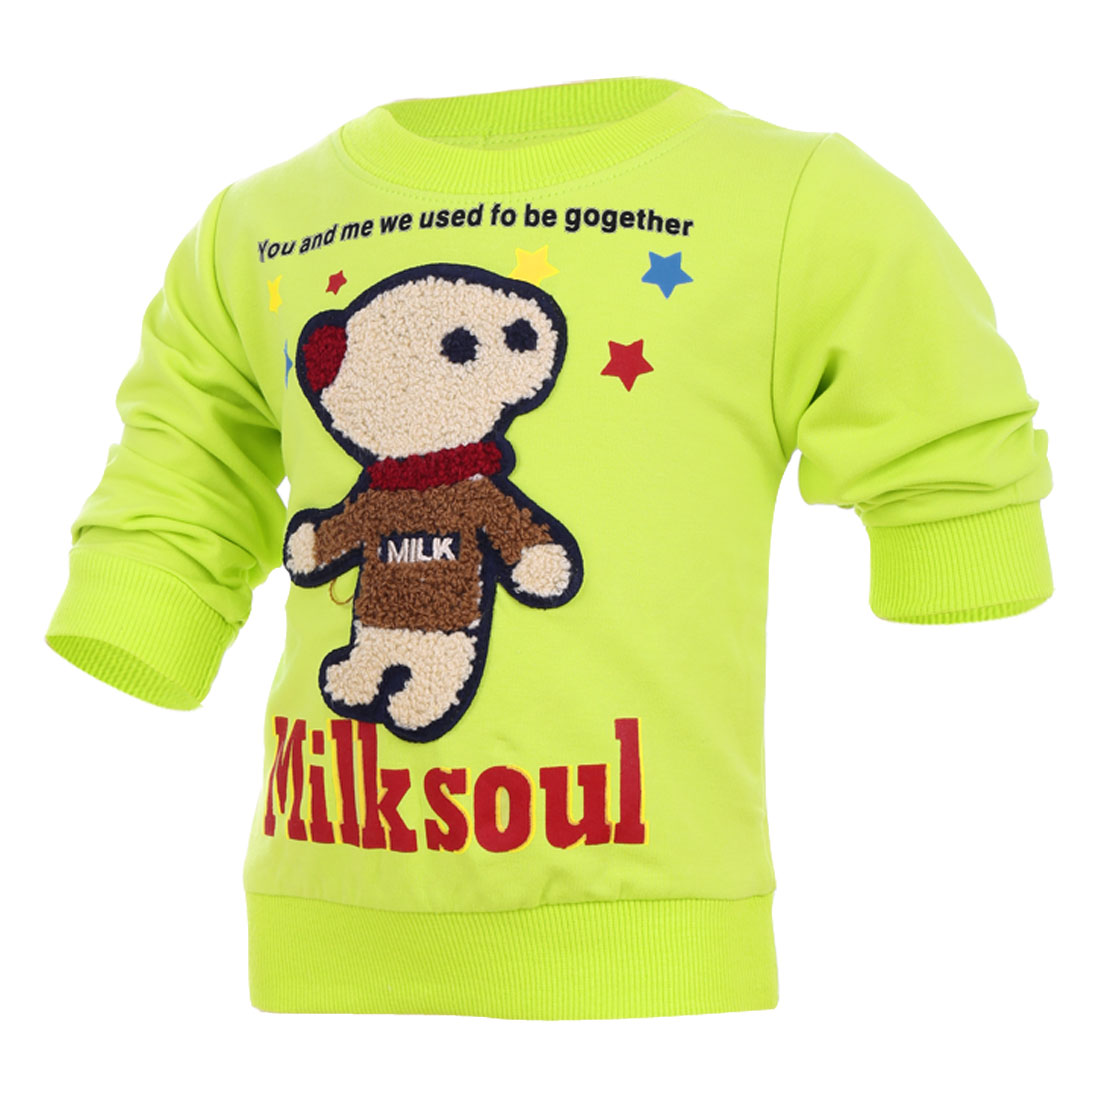 Allegra K Unisex Children Stylish Cartoon Bear Panel Design Top Shirt Green (Size 3T)